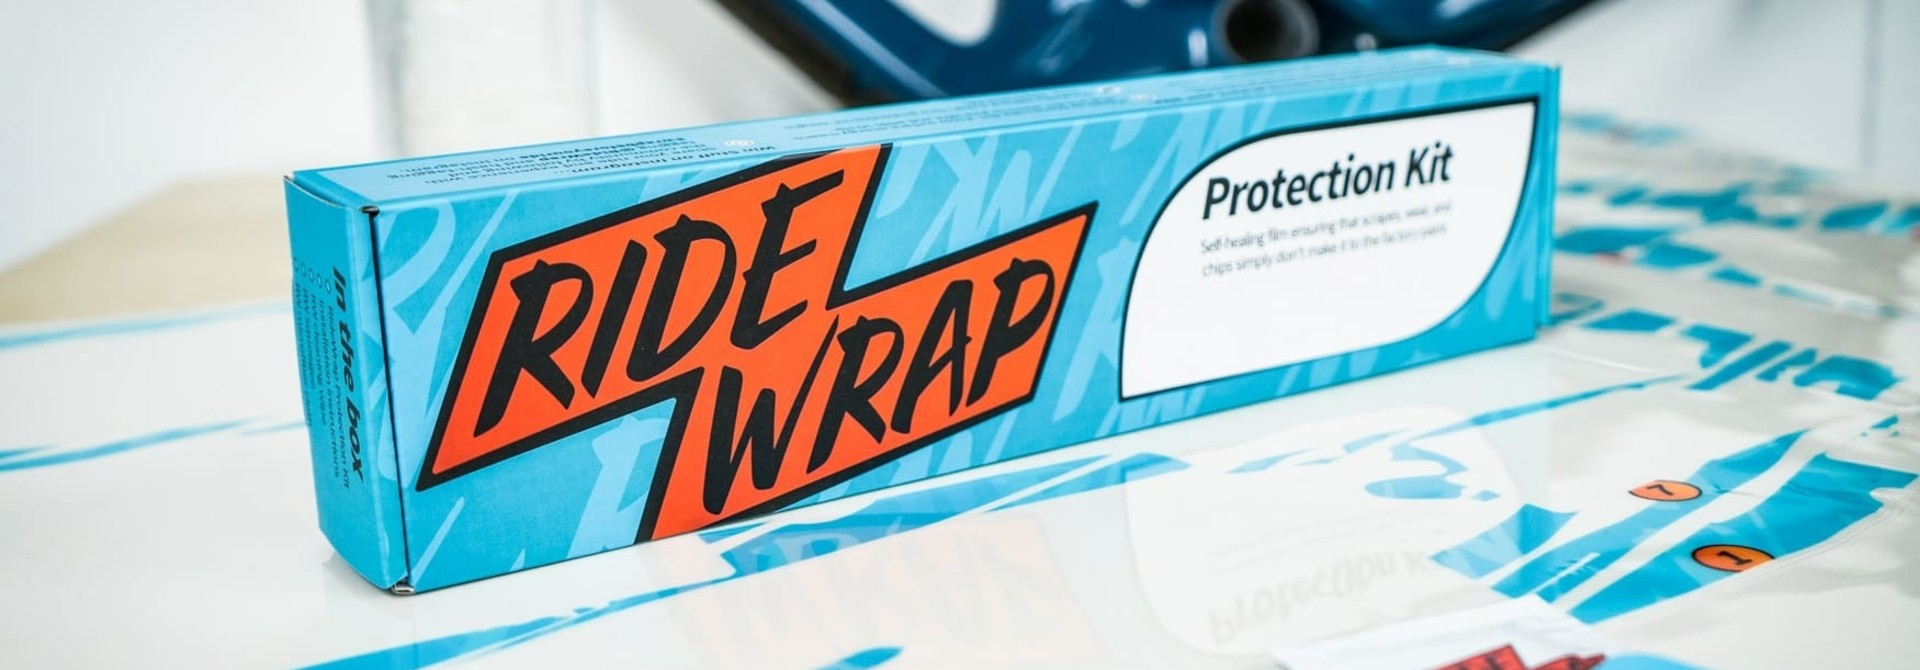 RideWrap Covered Frame Protection Kit, Collective Series, Steel MTB, Clear Matte Finish